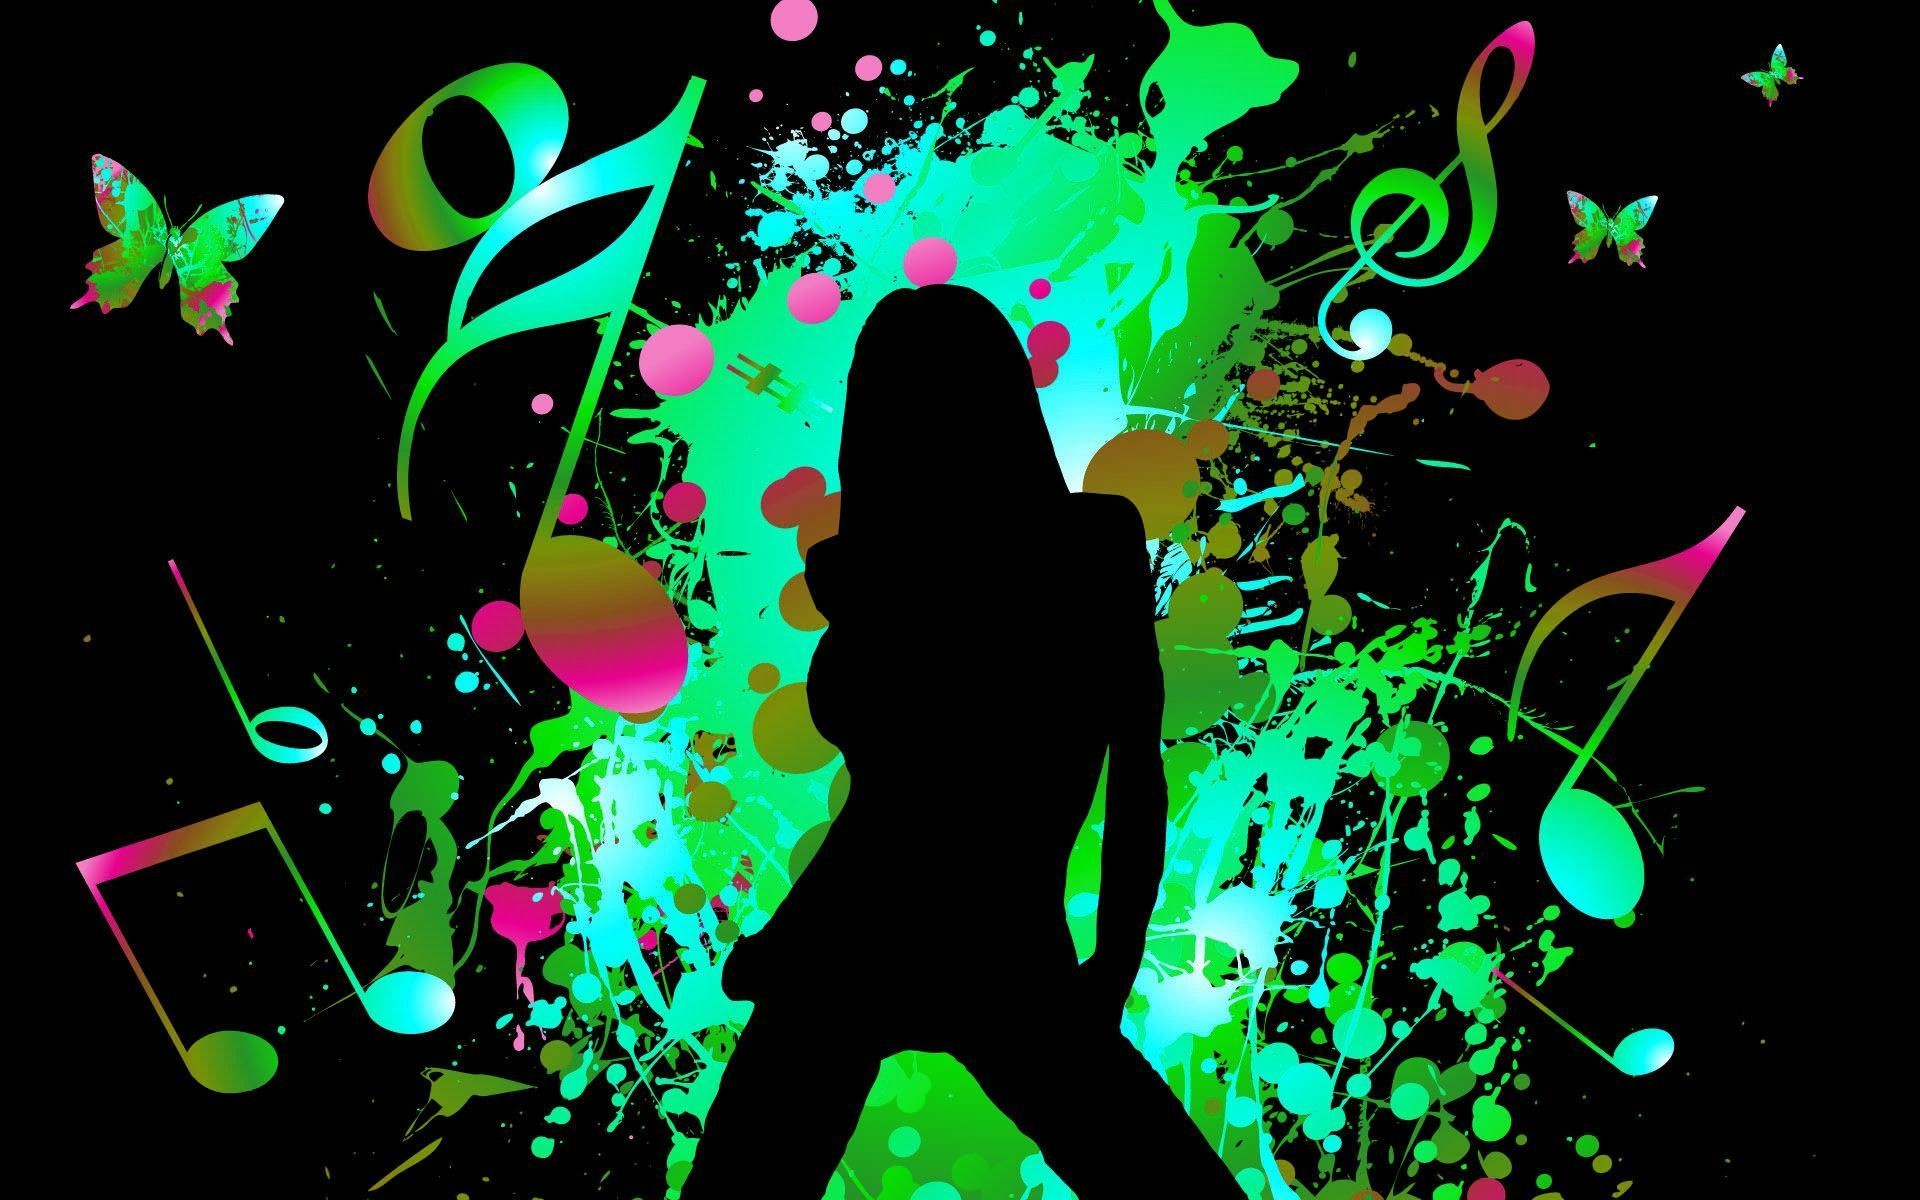 Guitar Girl Silhouete Wallpaper Iphone Music Girl Wallpaper Hd 75 Images